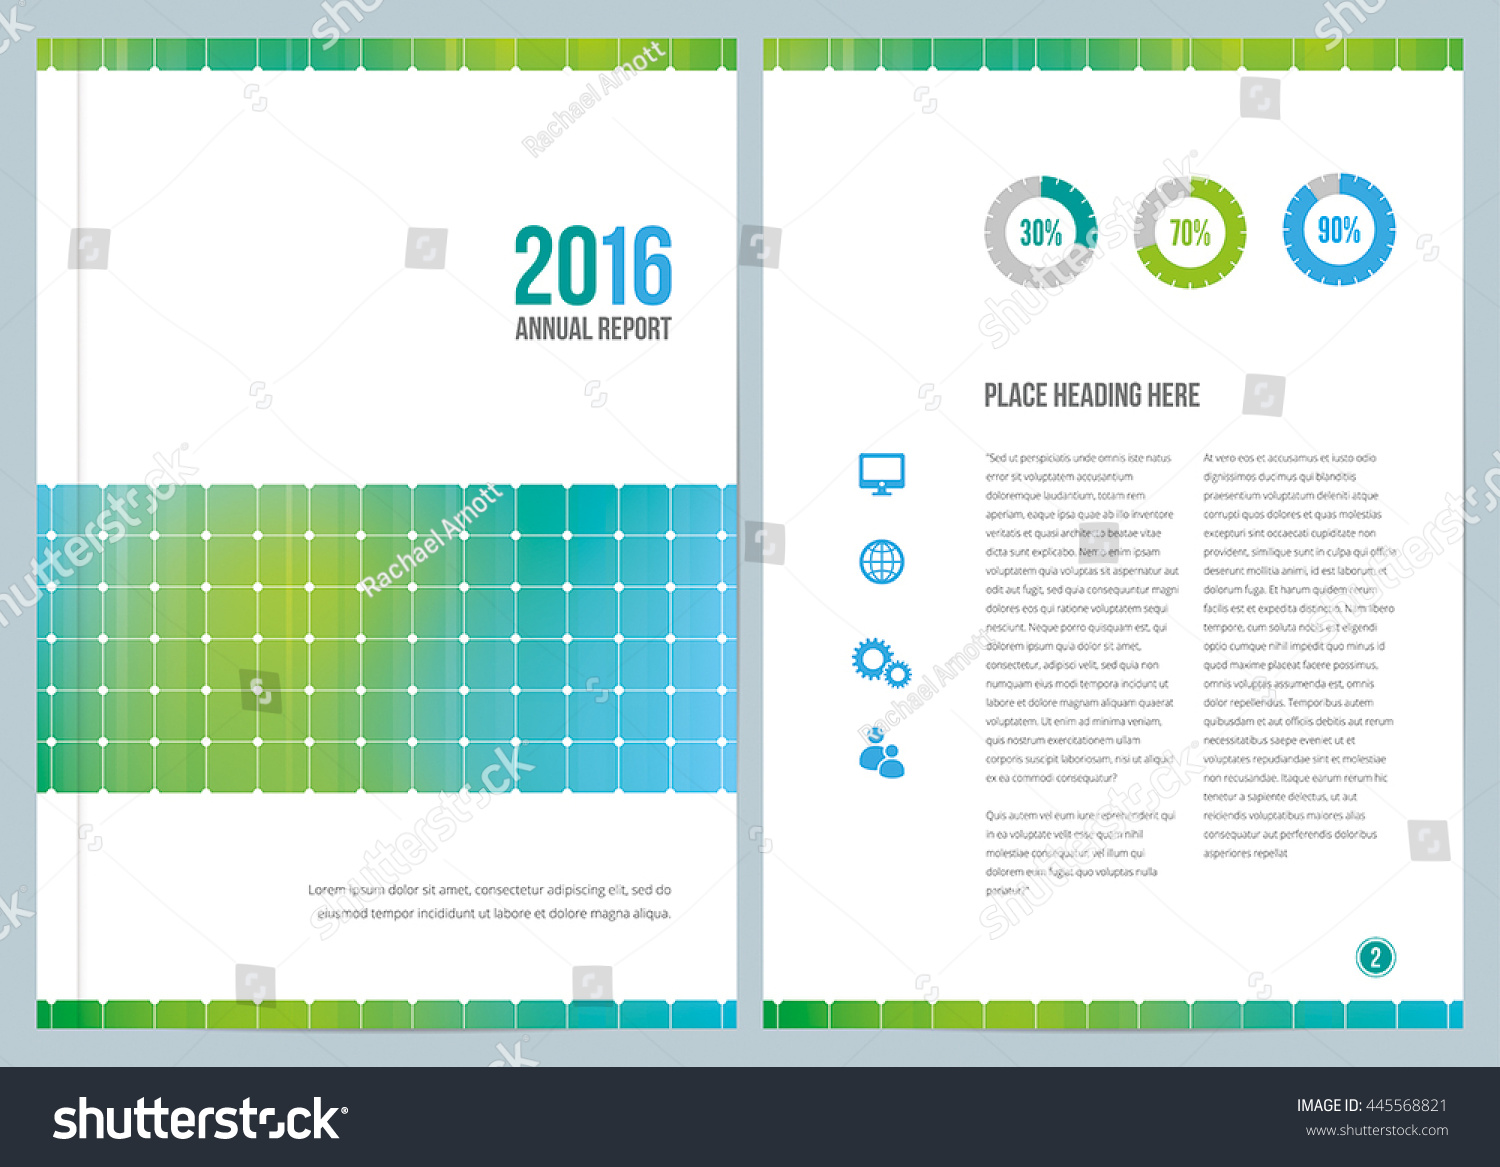 Modern Annual Report Design Cover Inside Stock Vector (Royalty Free ...